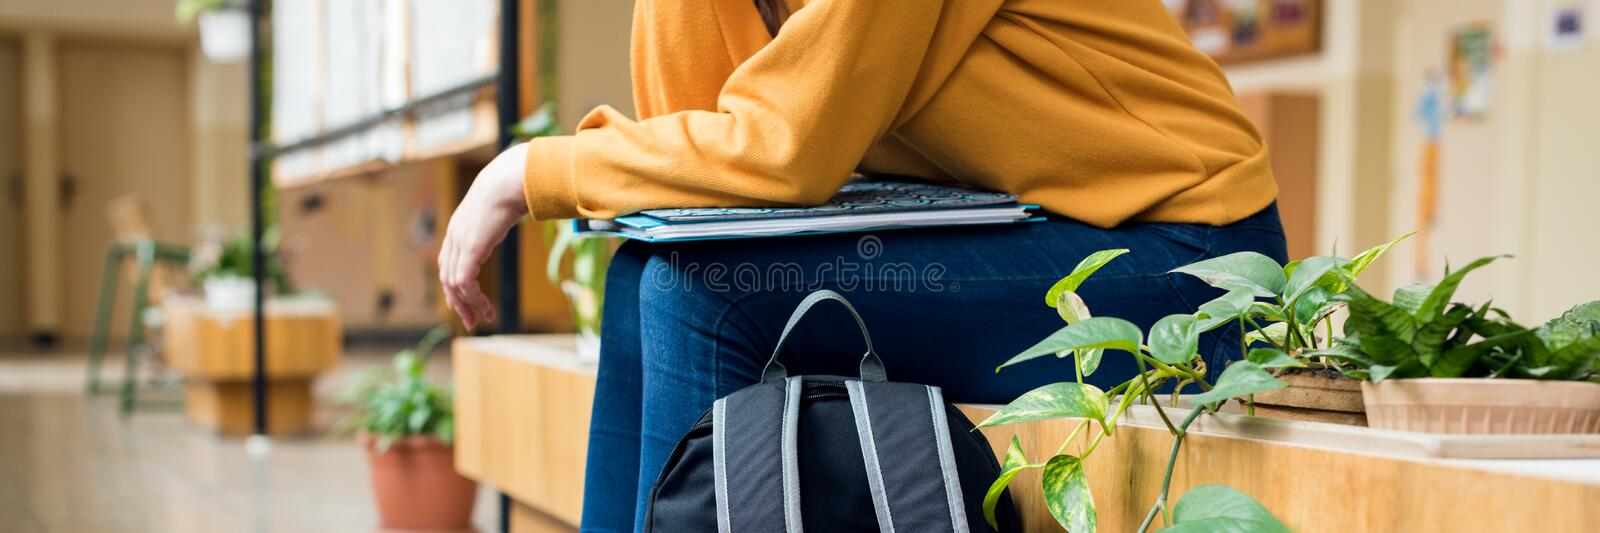 Young unrecognisable depressed lonely female college student sitting in the hallway at her school. Education, Bullying, Depression royalty free stock photo